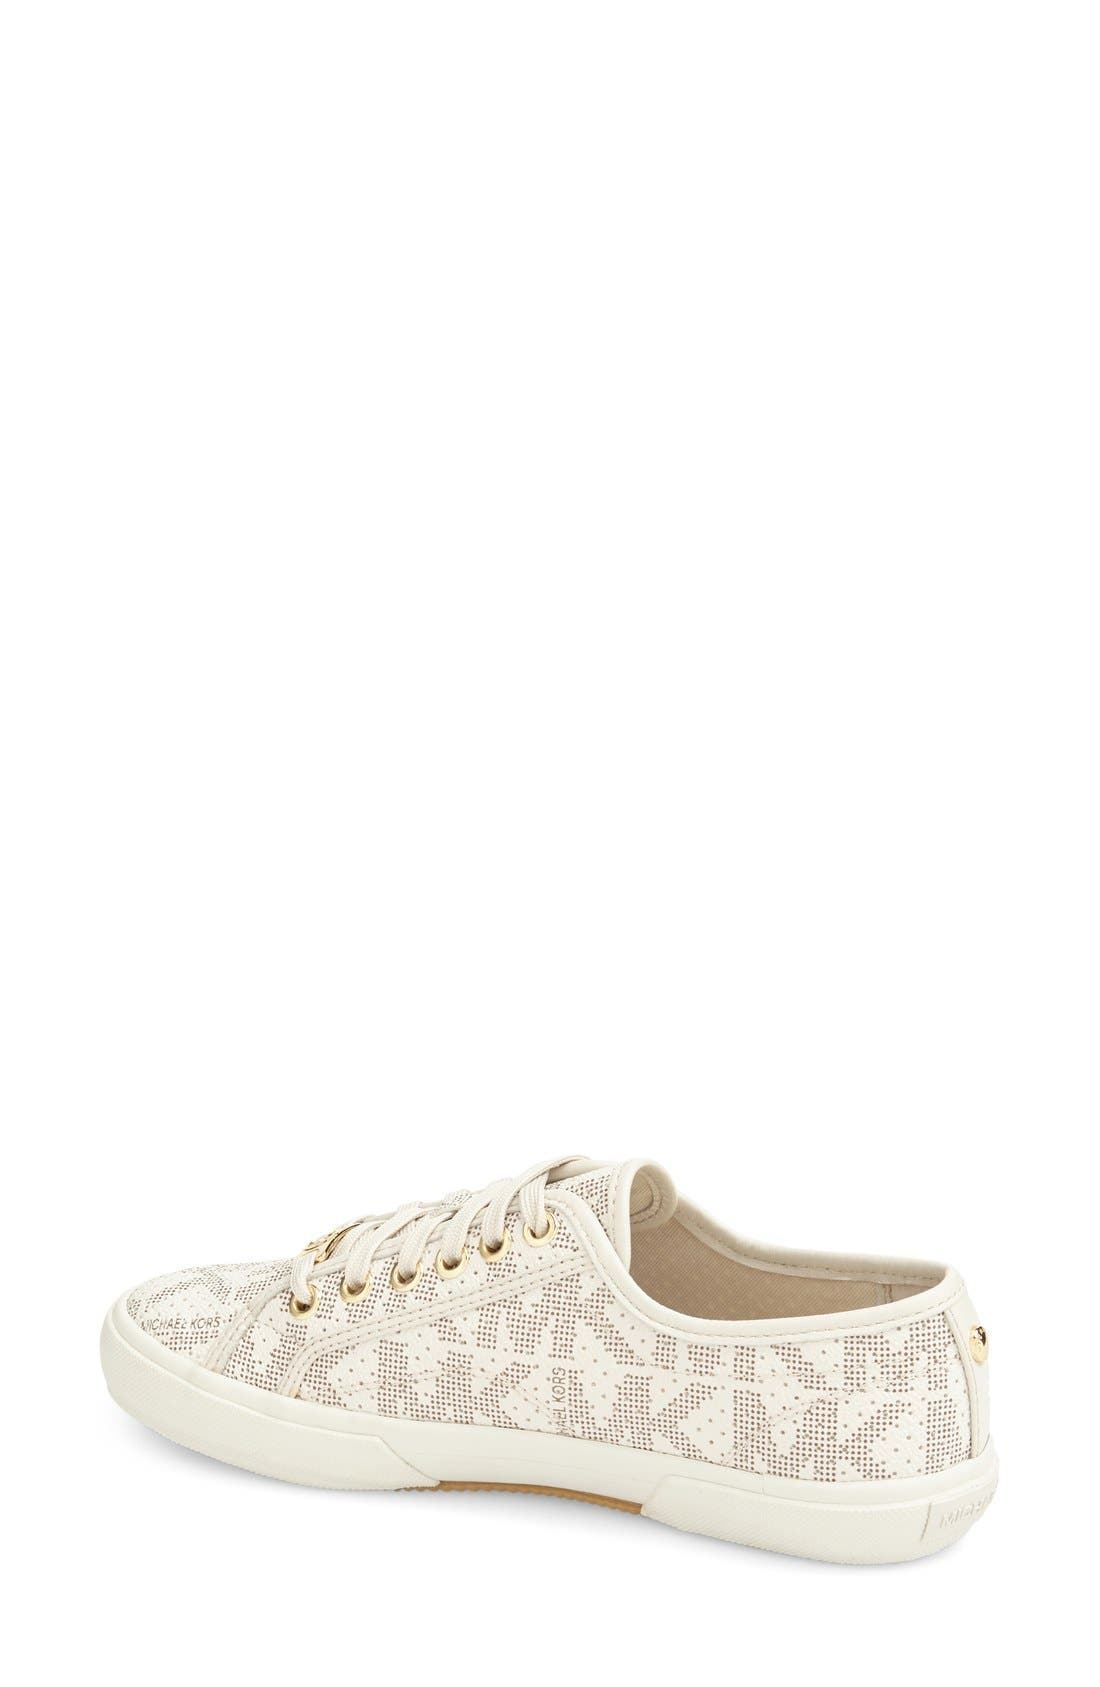 Alternate Image 2  - MICHAEL Michael Kors 'Boerum' Sneaker